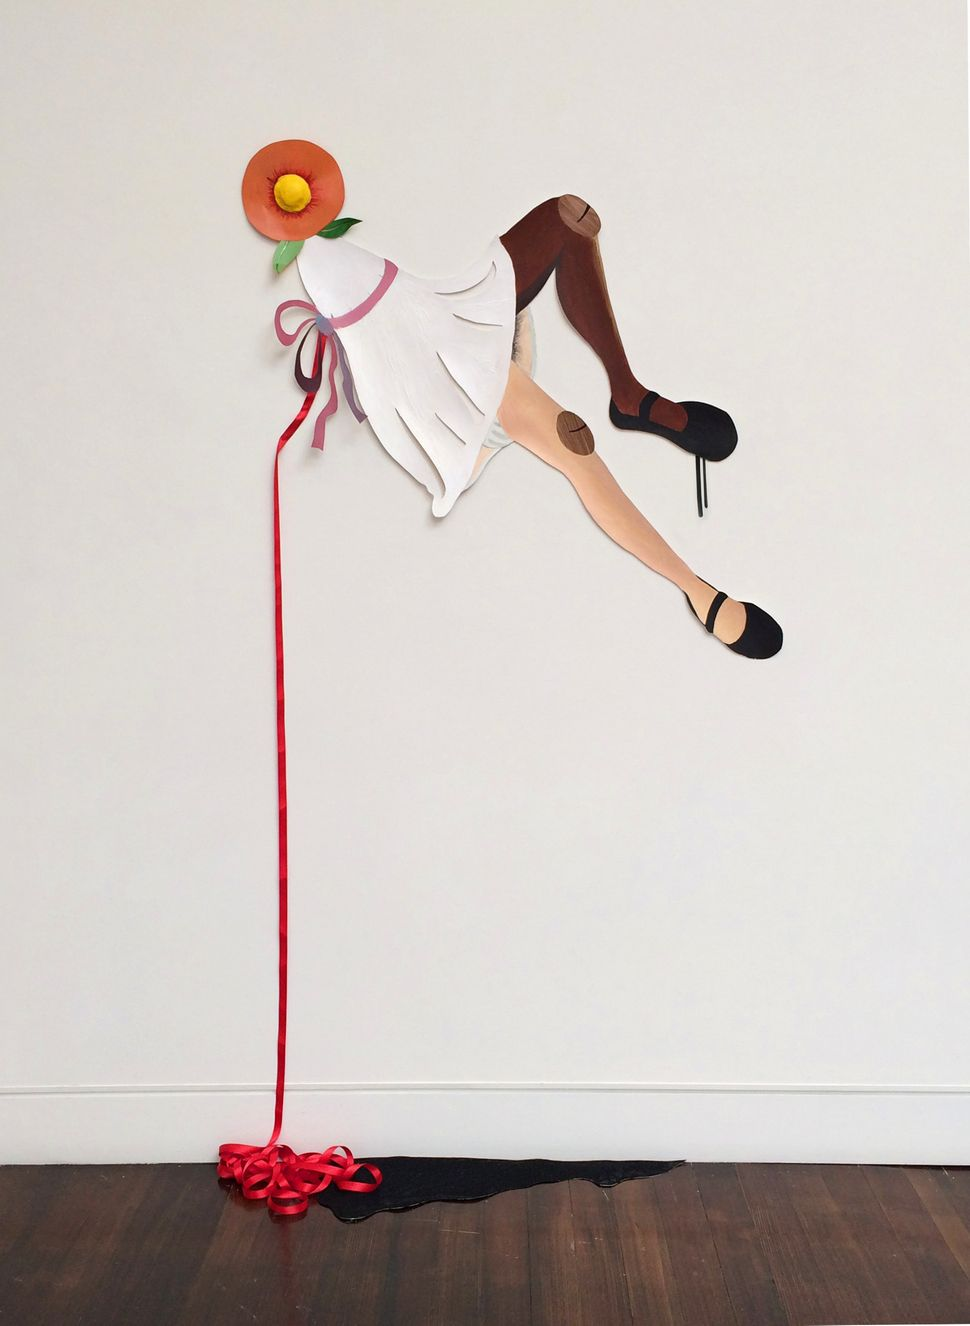 Alexandria Smith The Ecstasy or Colloquial Transverberations 2014 Mixed media installation on paper 48 x 48 inches